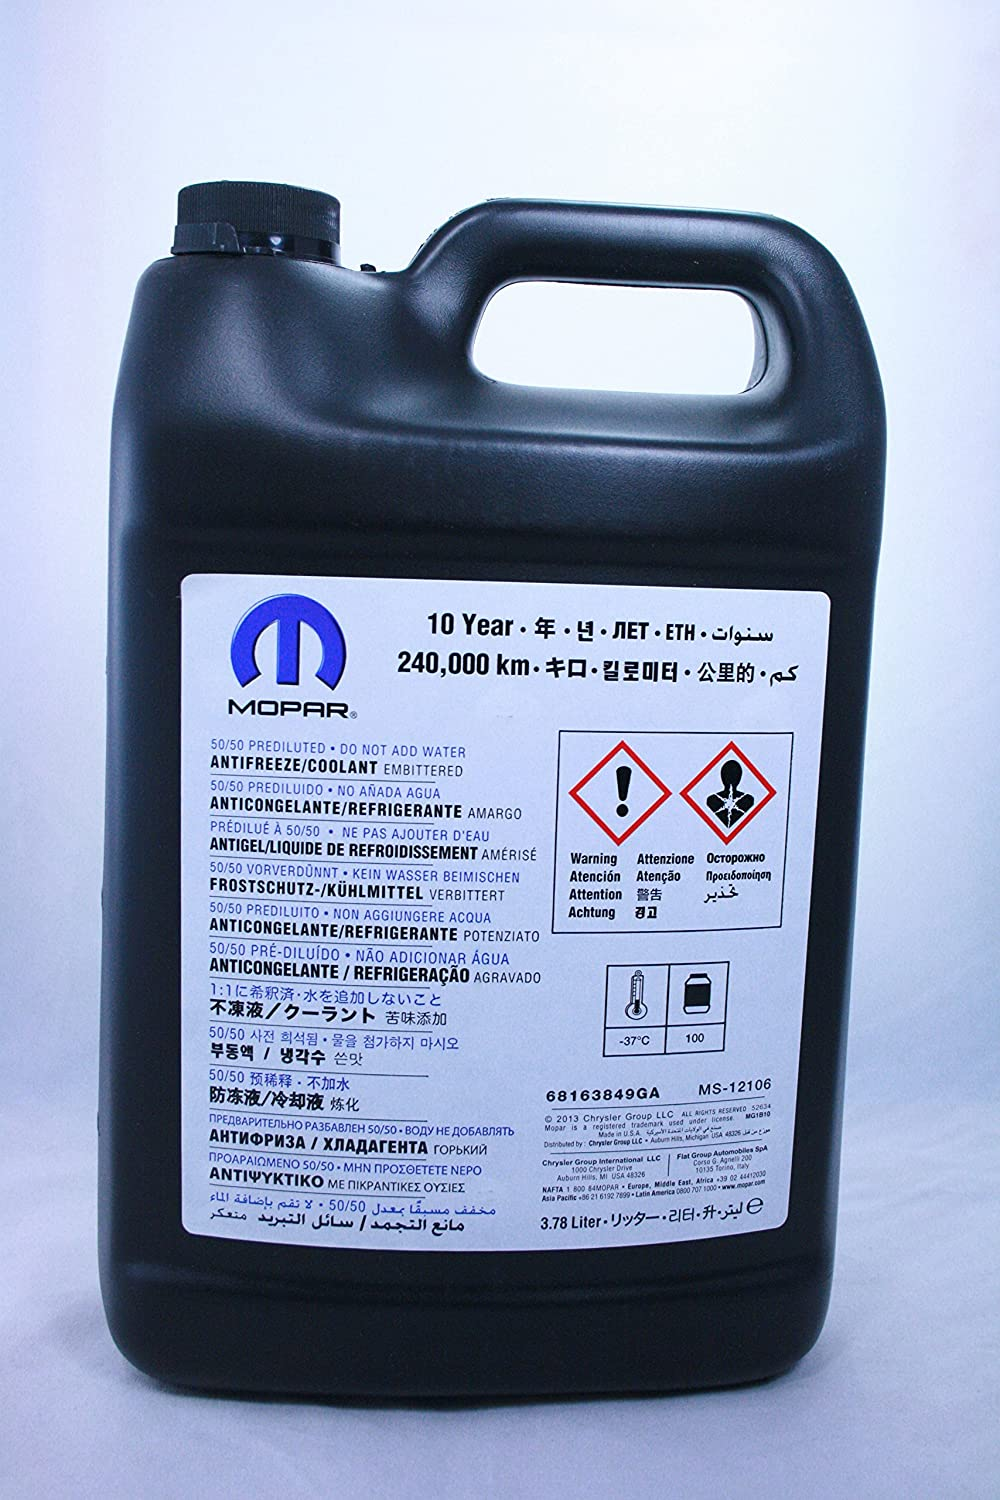 Hyundai Elantra: Use high quality ethylene glycol coolant